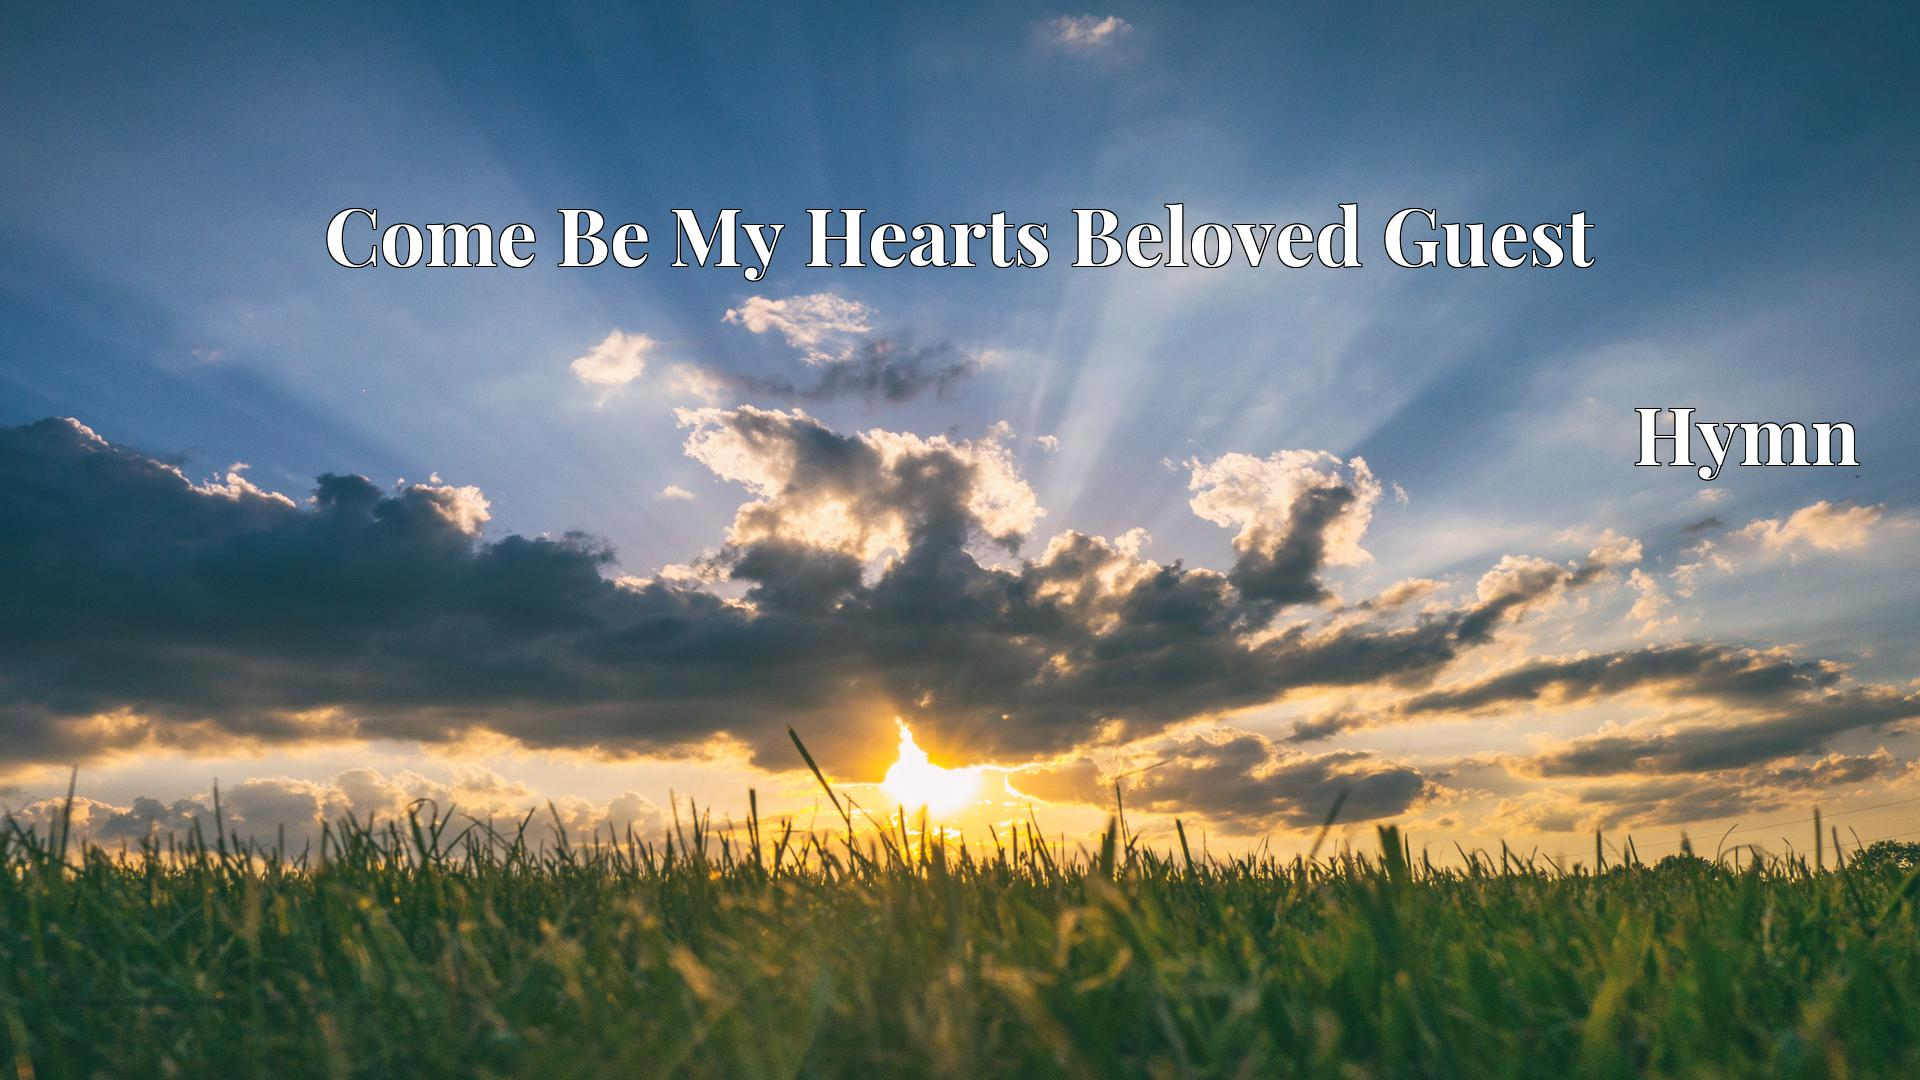 Come Be My Hearts Beloved Guest - Hymn